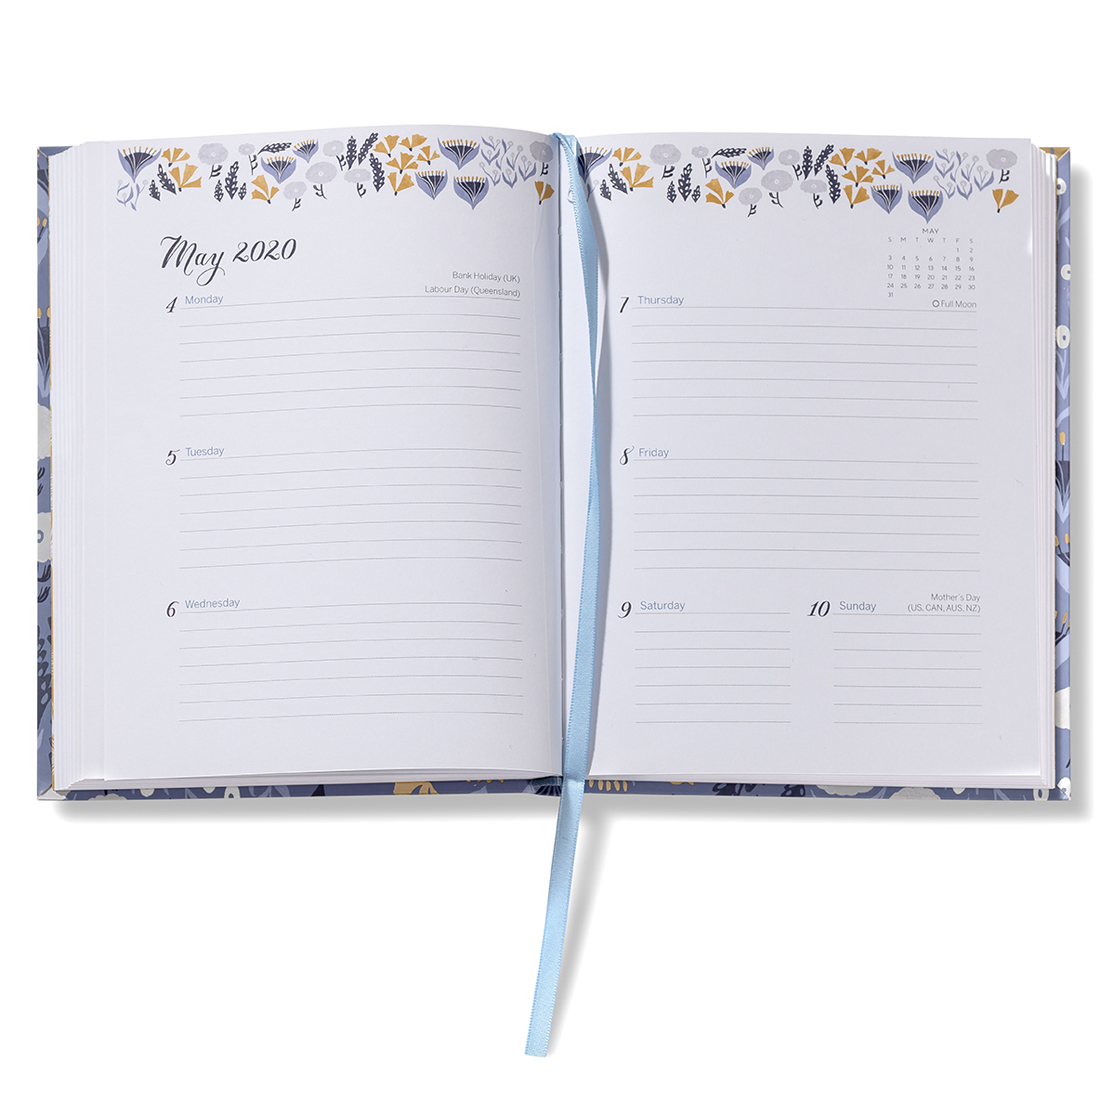 High_Note_Garden_Bee_WeeklyPlanner6.jpg